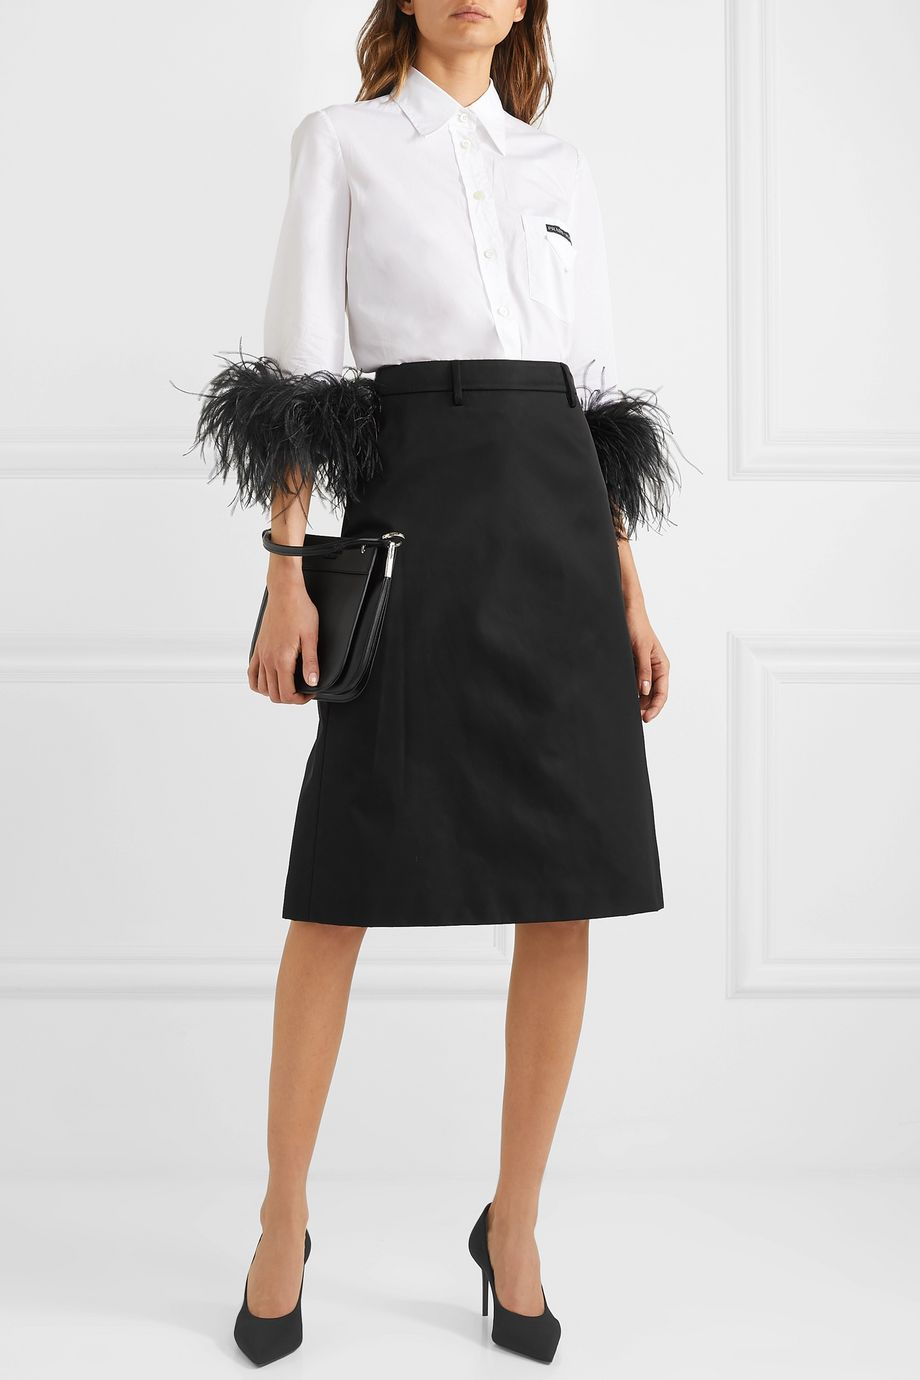 Prada Appliquéd nylon midi skirt